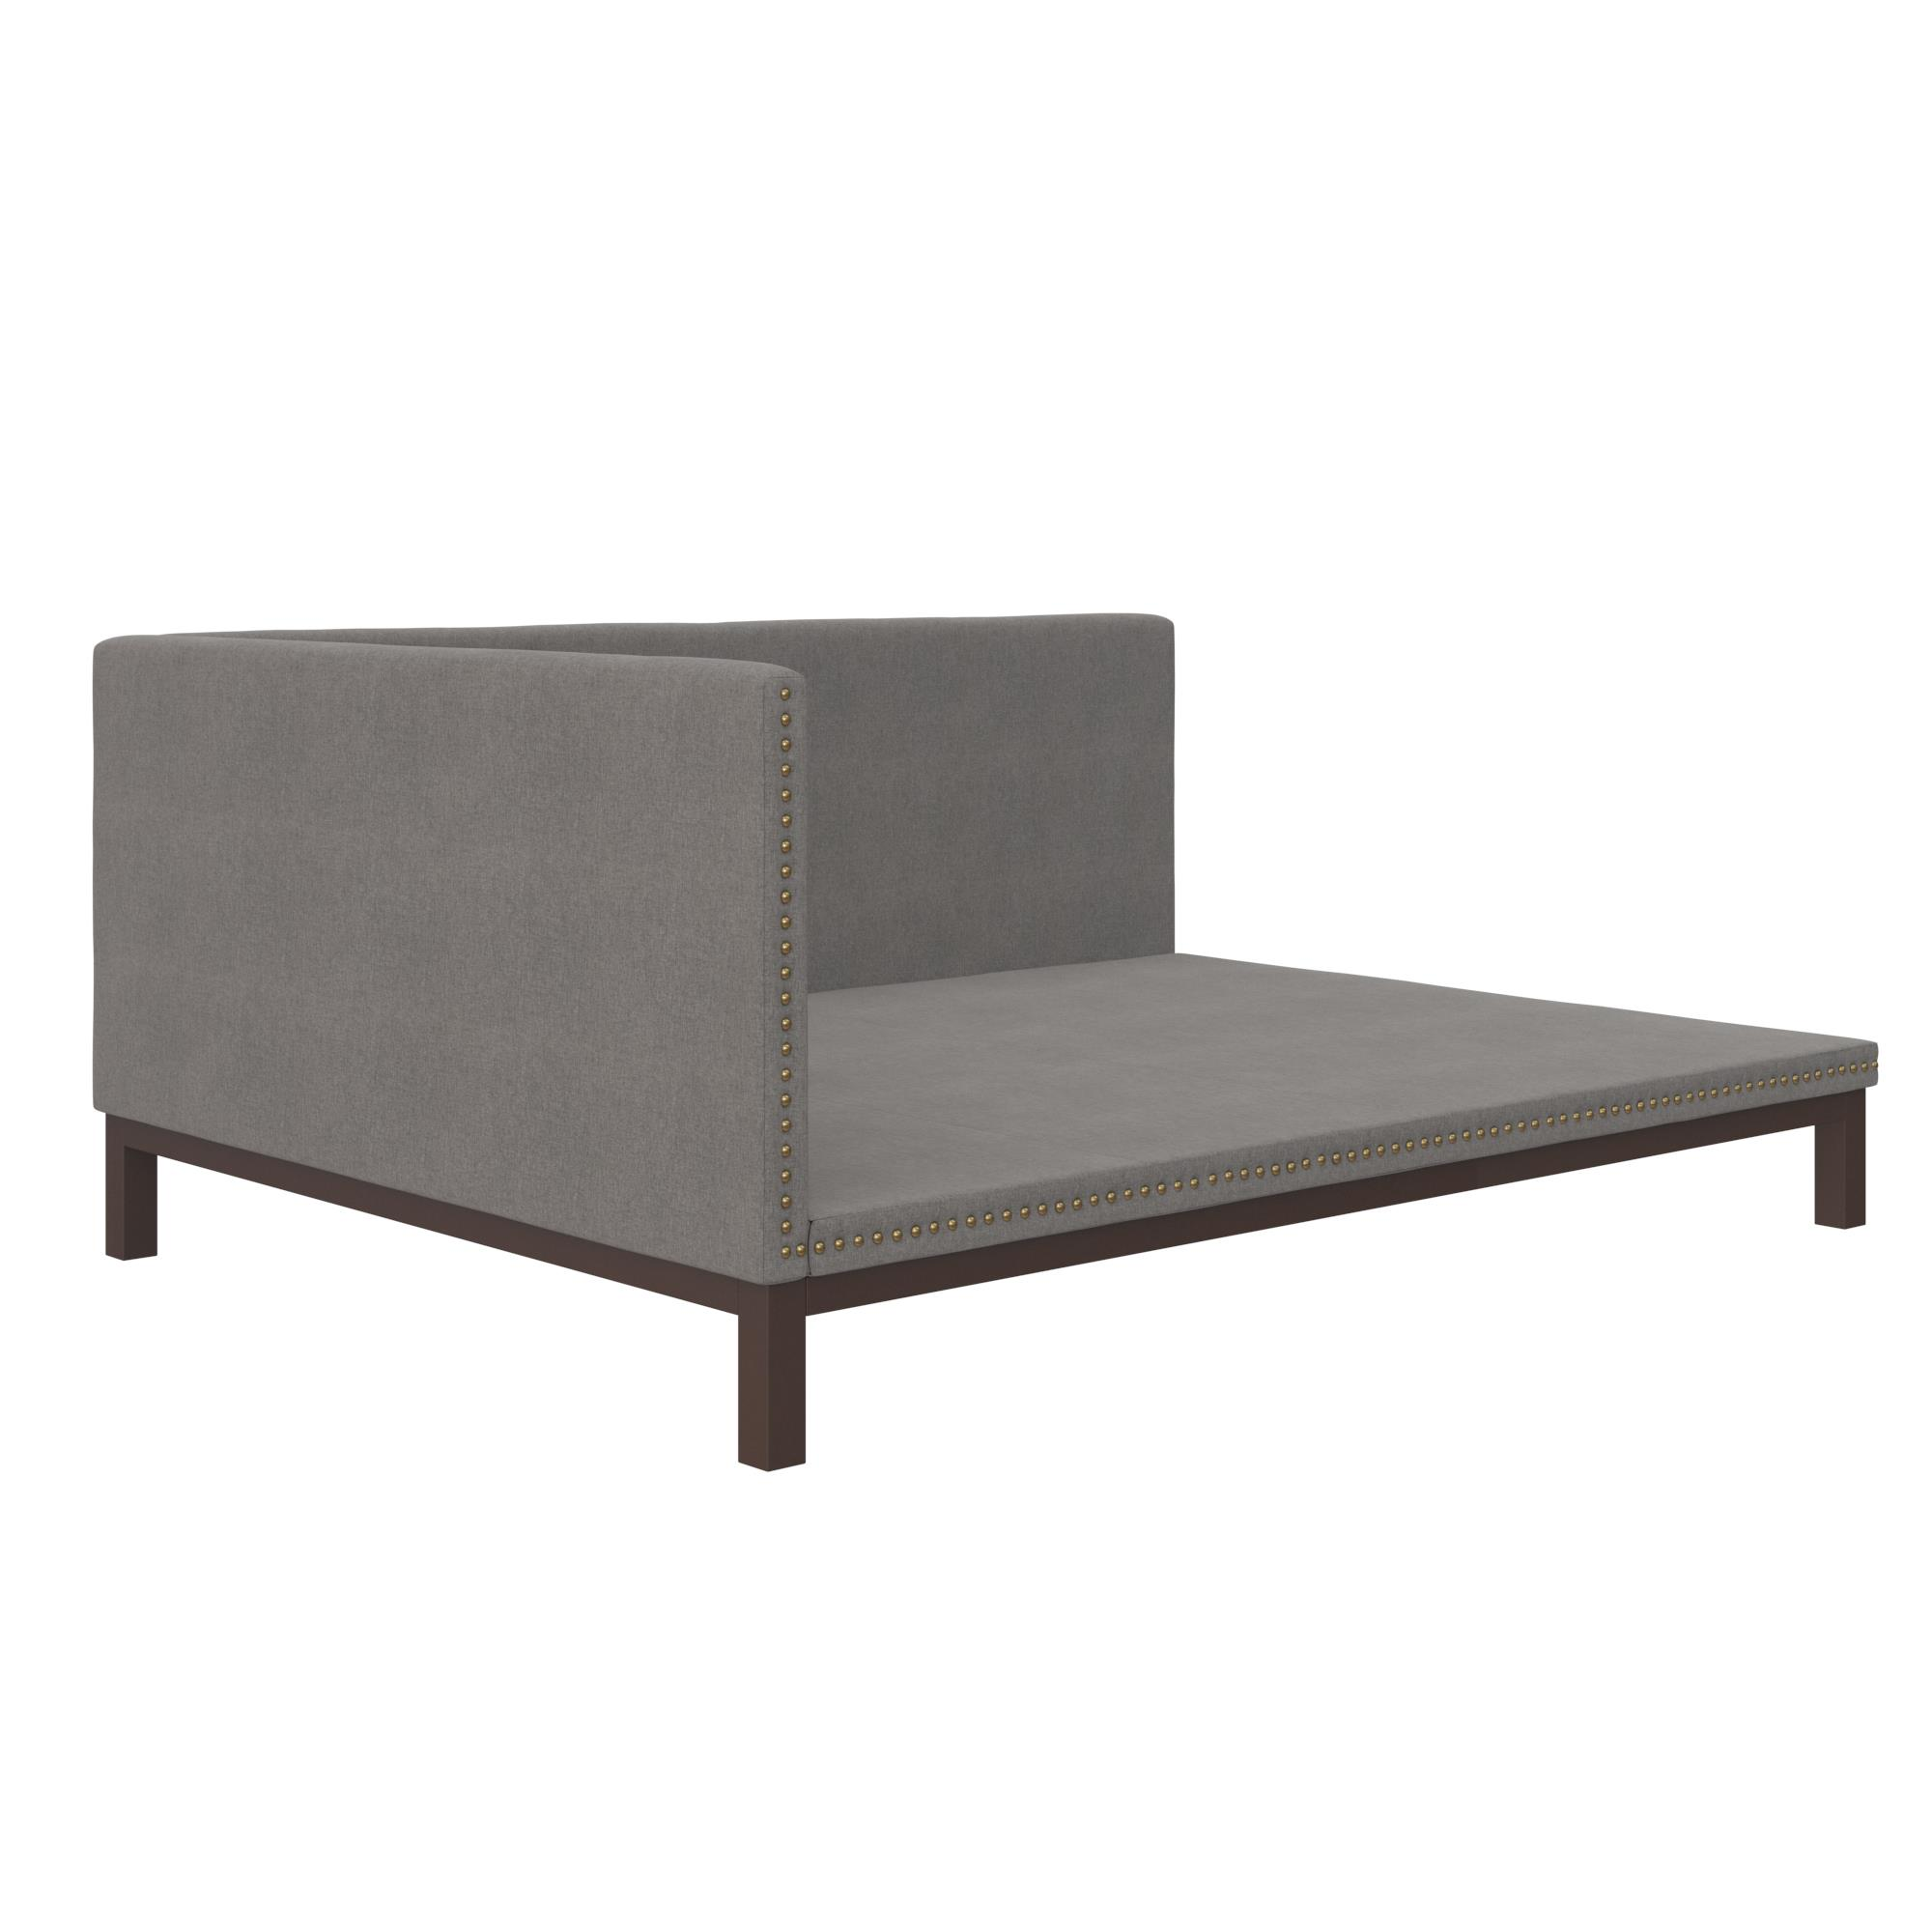 Ordinaire DHP Mid Century Upholstered Modern Daybed, Full Size, Grey Linen    Walmart.com